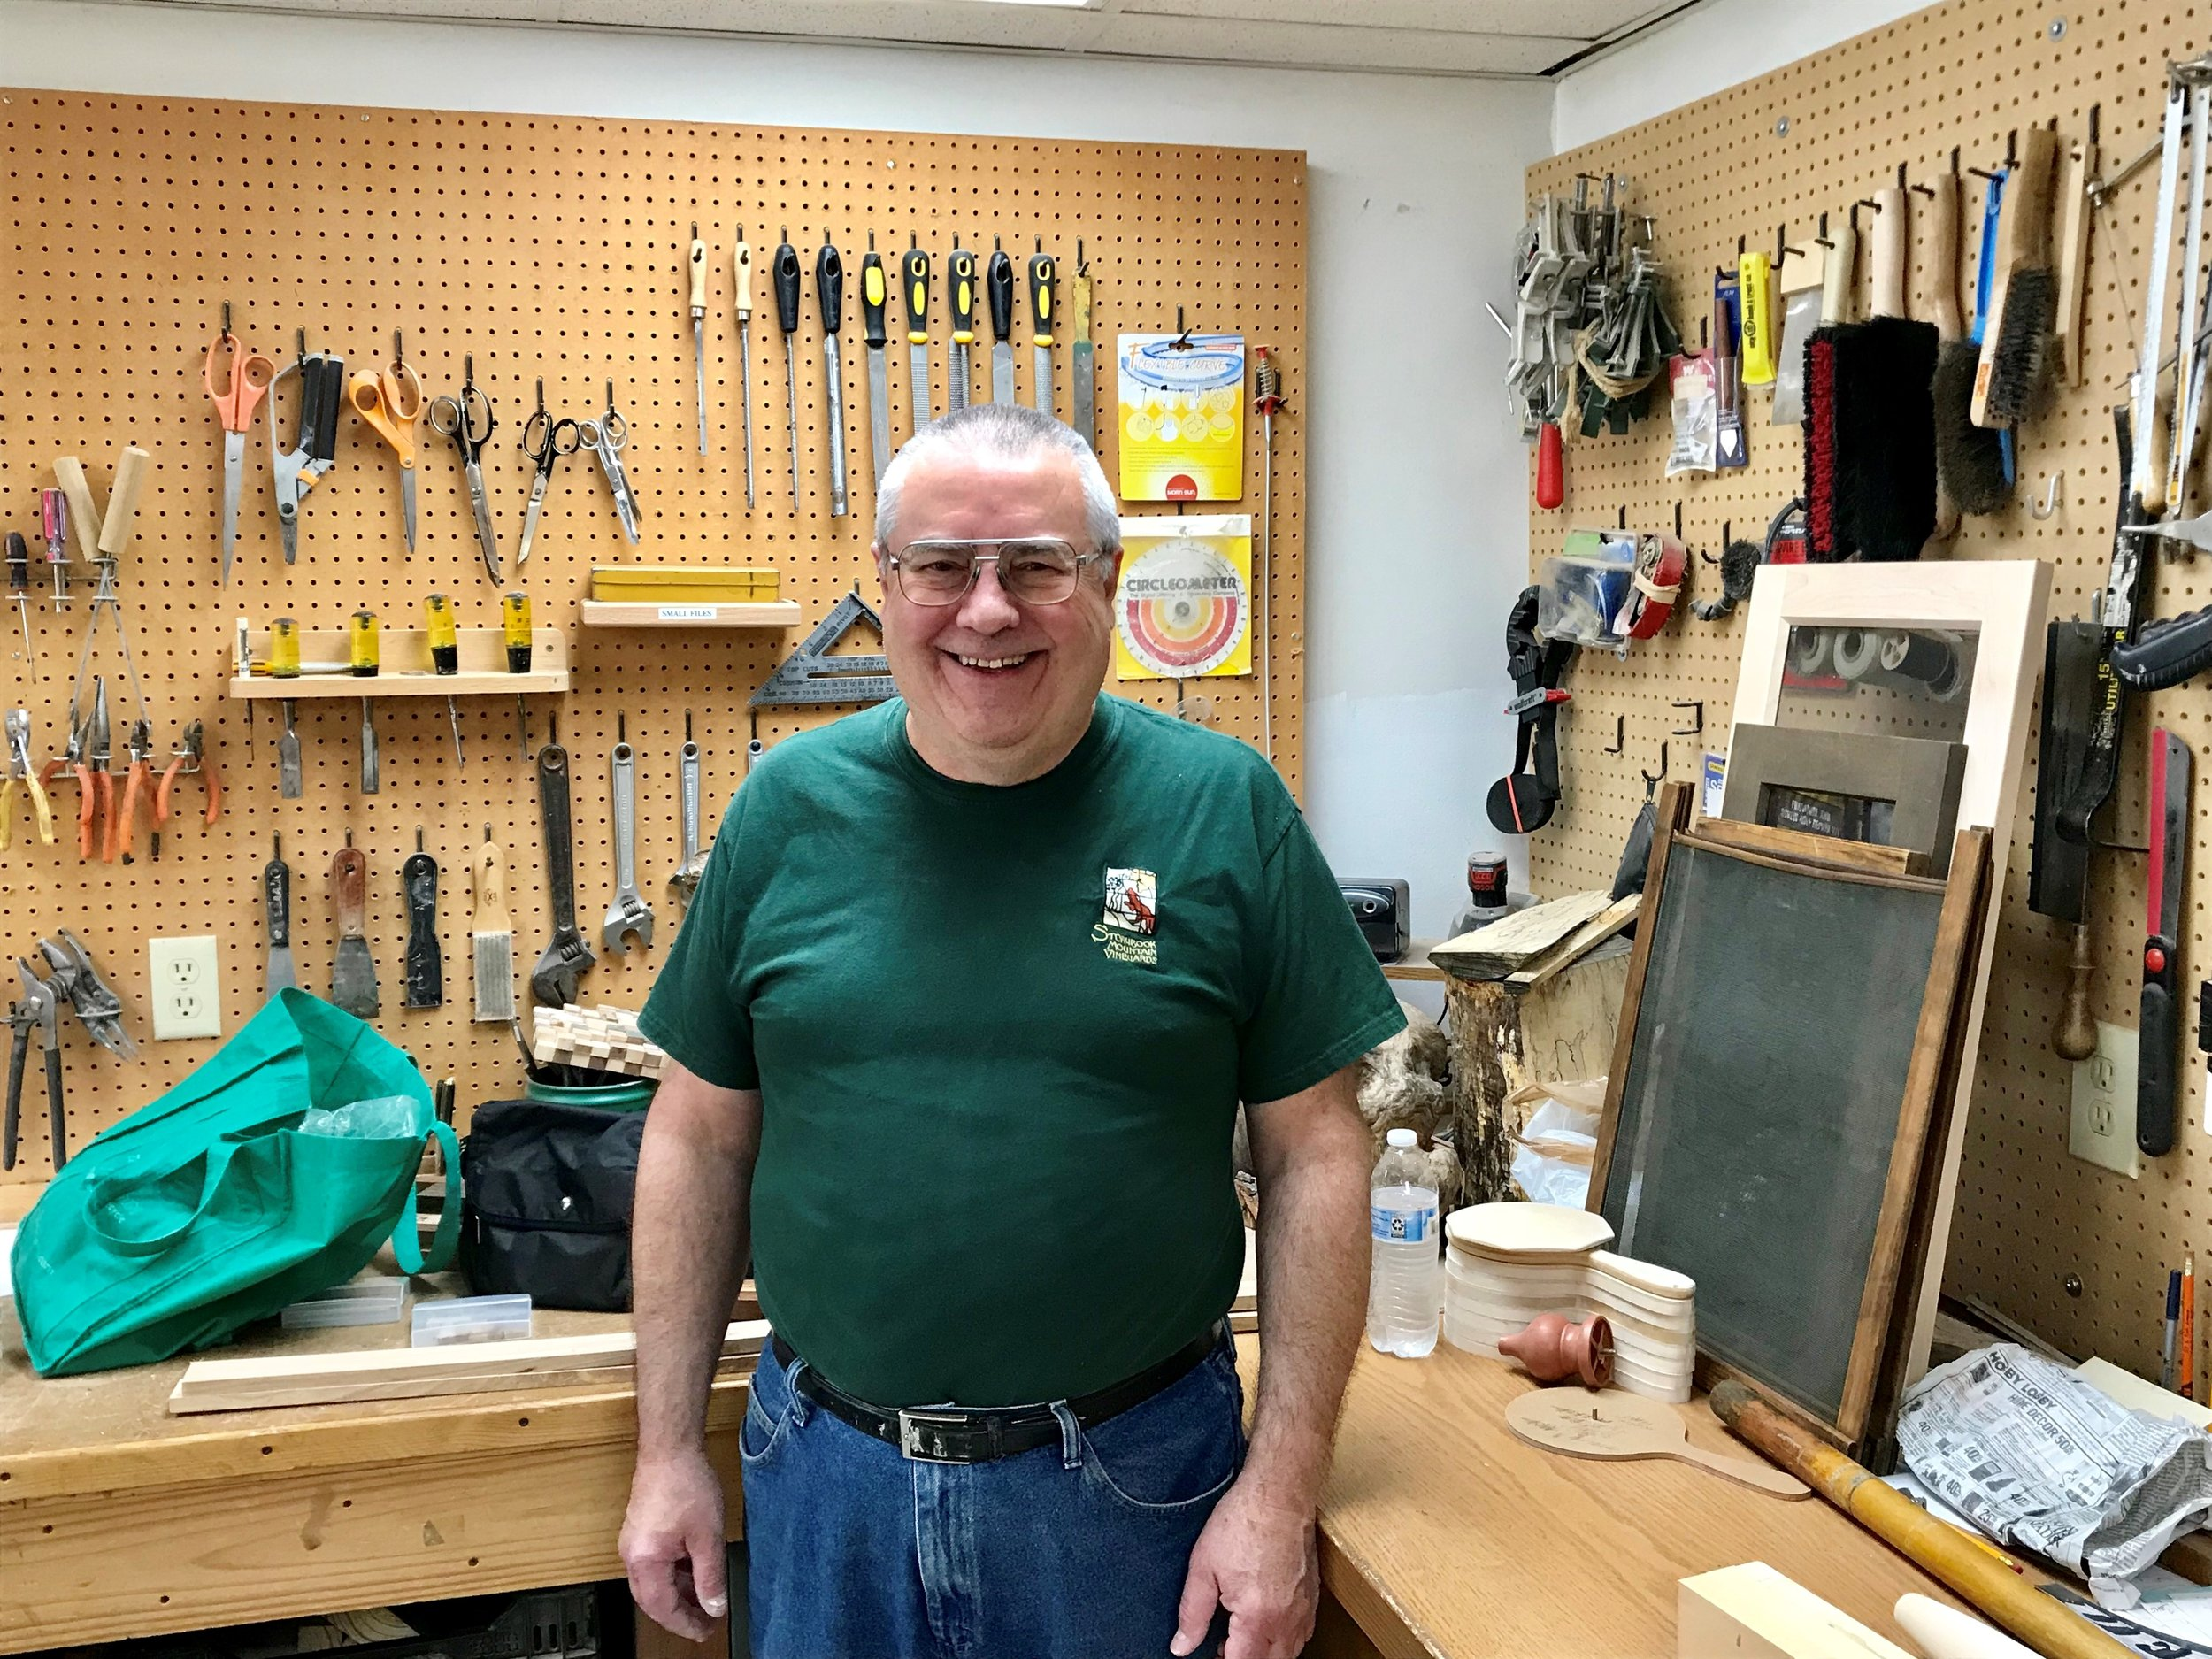 """""""I volunteer because I like woodworking and helping people.""""  -Mike"""